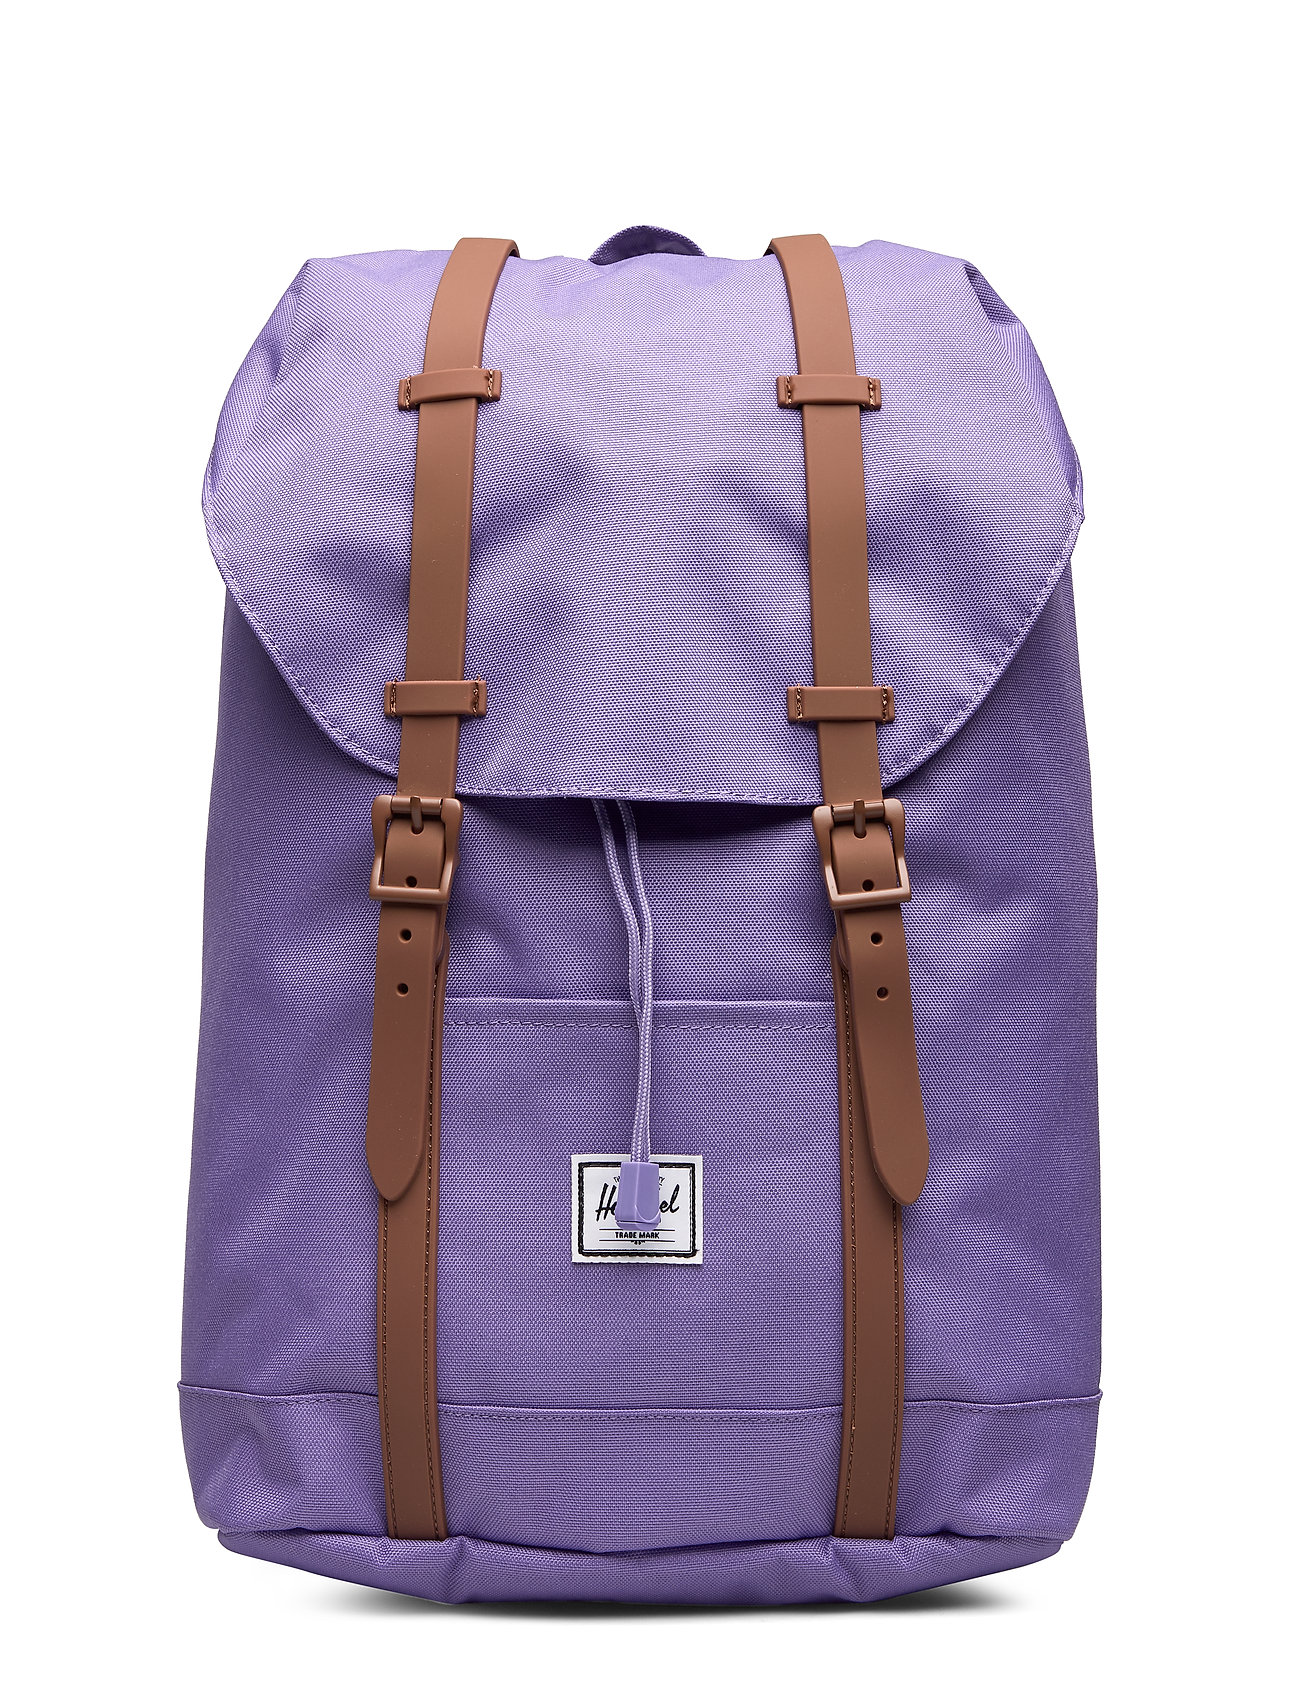 Herschel Retreat Youth-Aster Purple/Saddle Brown - ASTER PURPLE/SADDLE BROWN